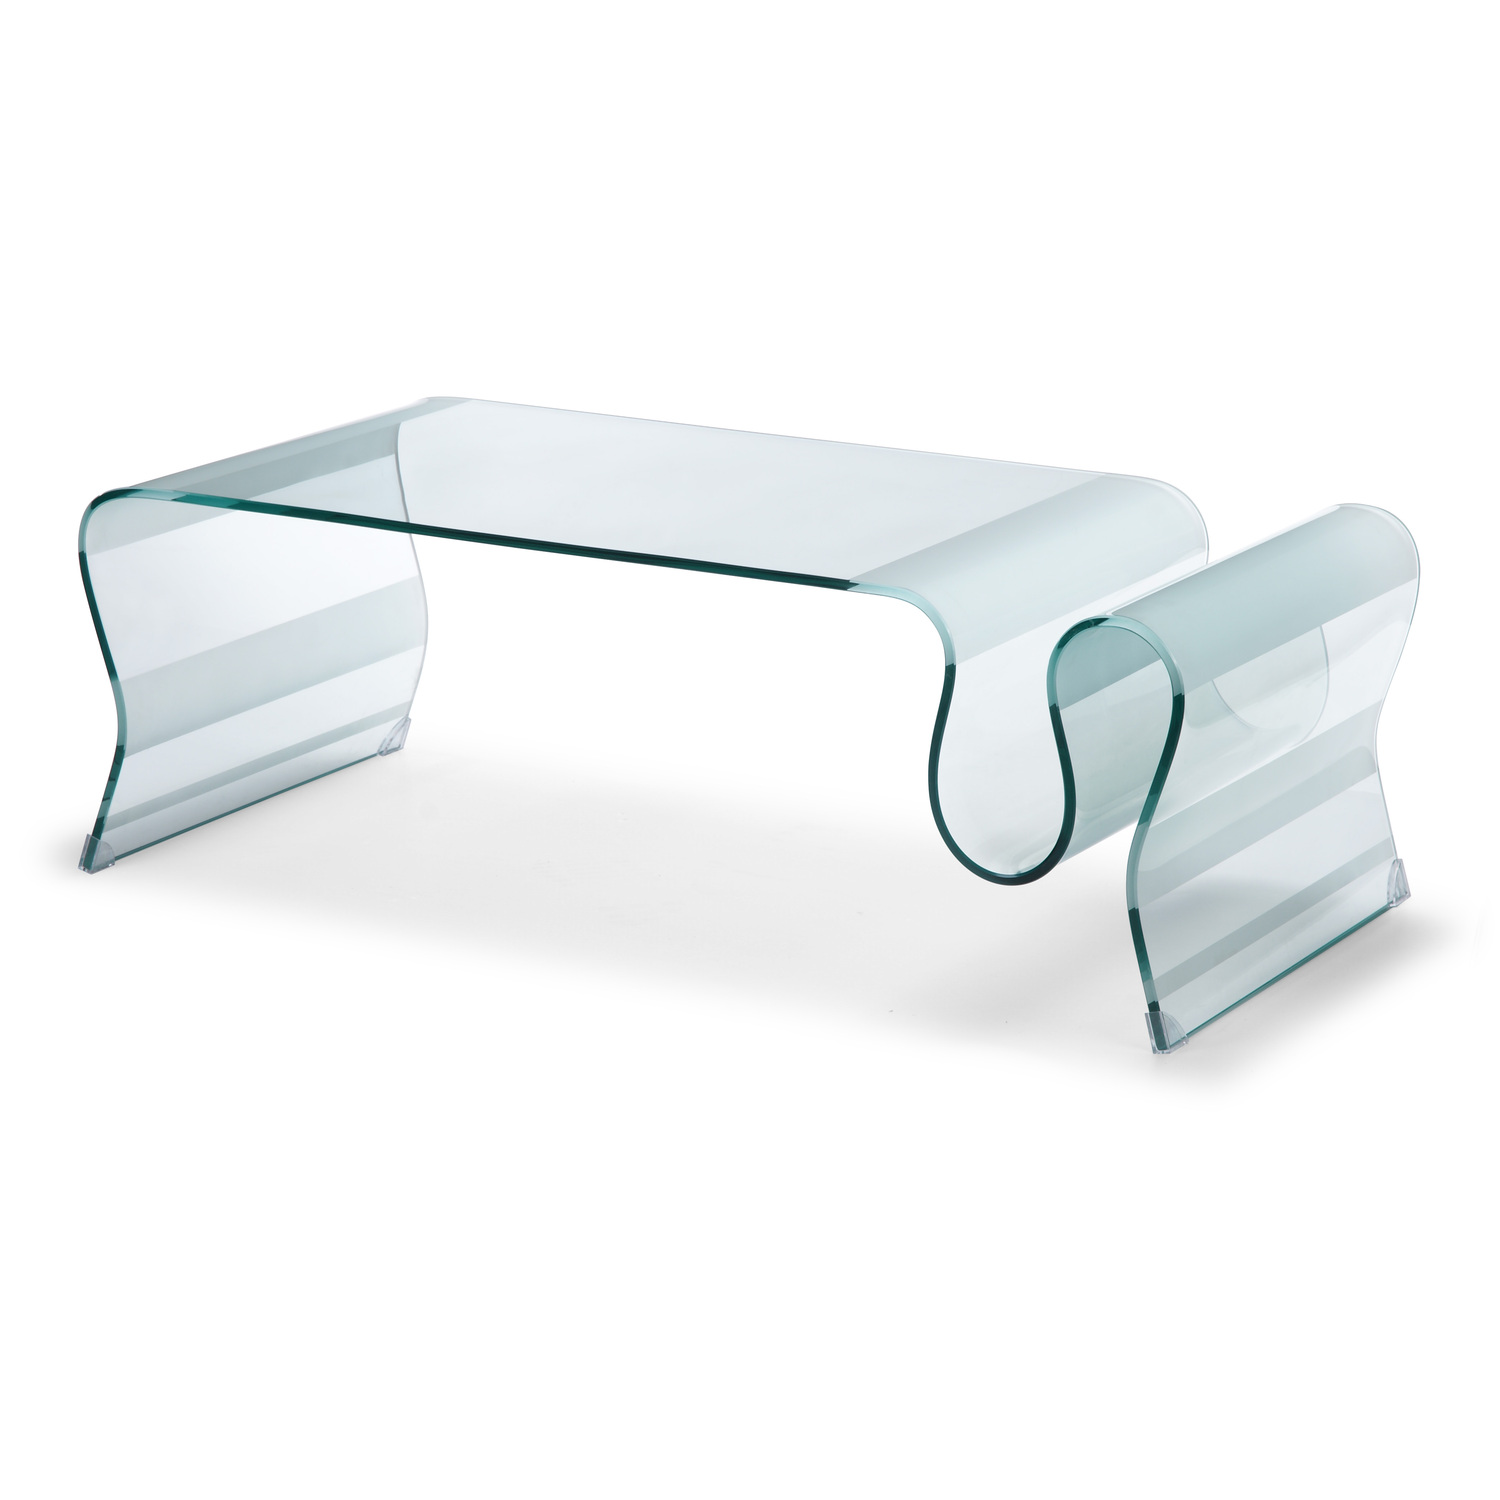 Zuo modern discovery coffee table clear glass by oj for Glass furniture